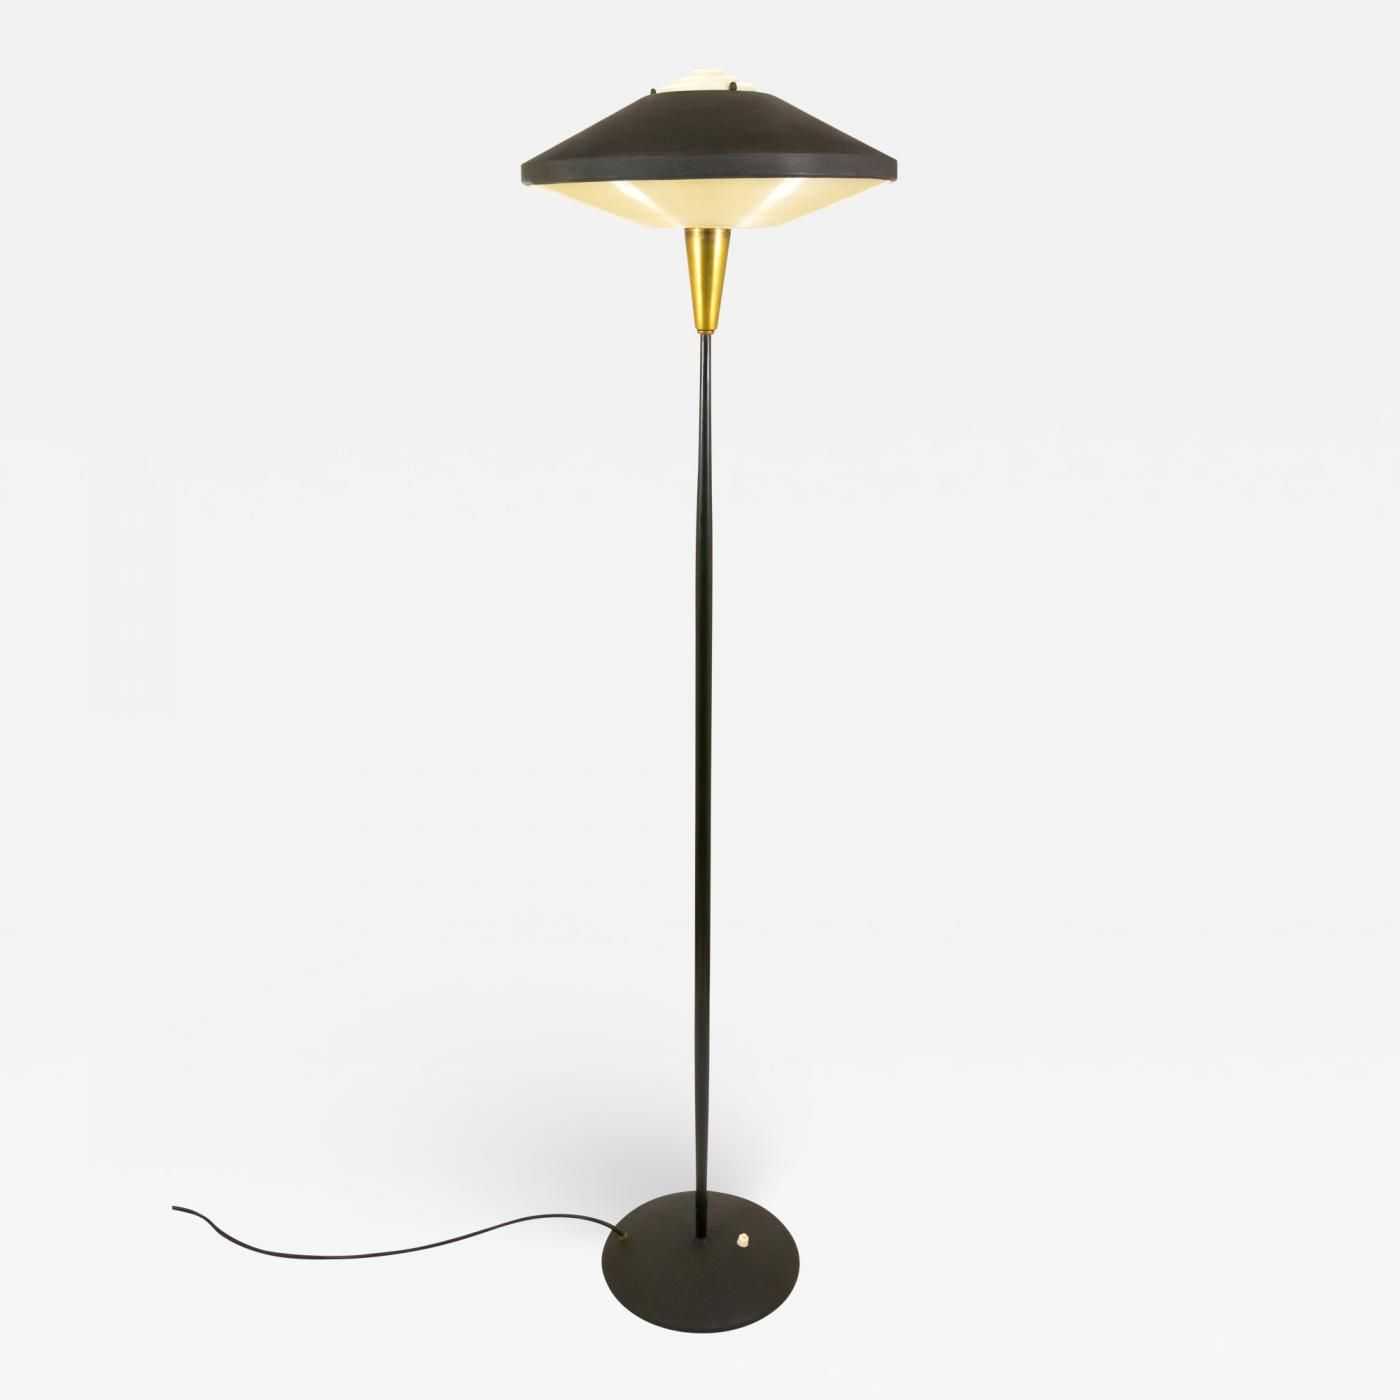 Italienische Küchenlampen Black Metal And Brass Floor Lamp By Louis Kalff For Philips 1950s